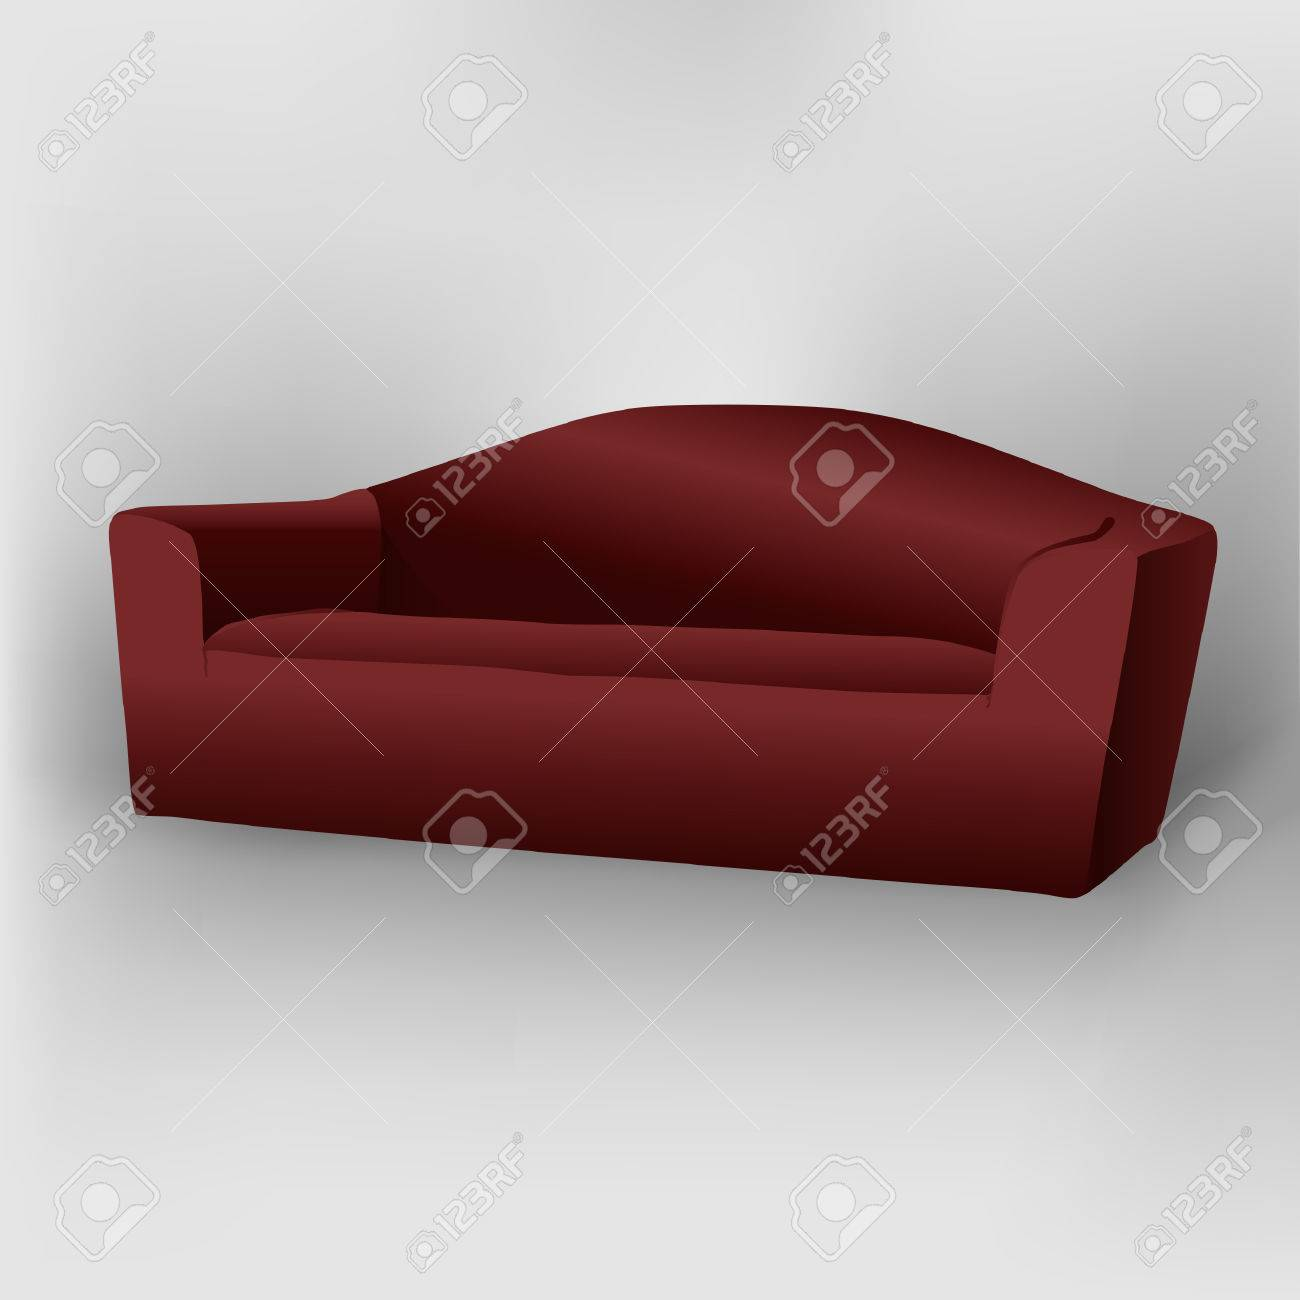 Dark red sofa with shadow